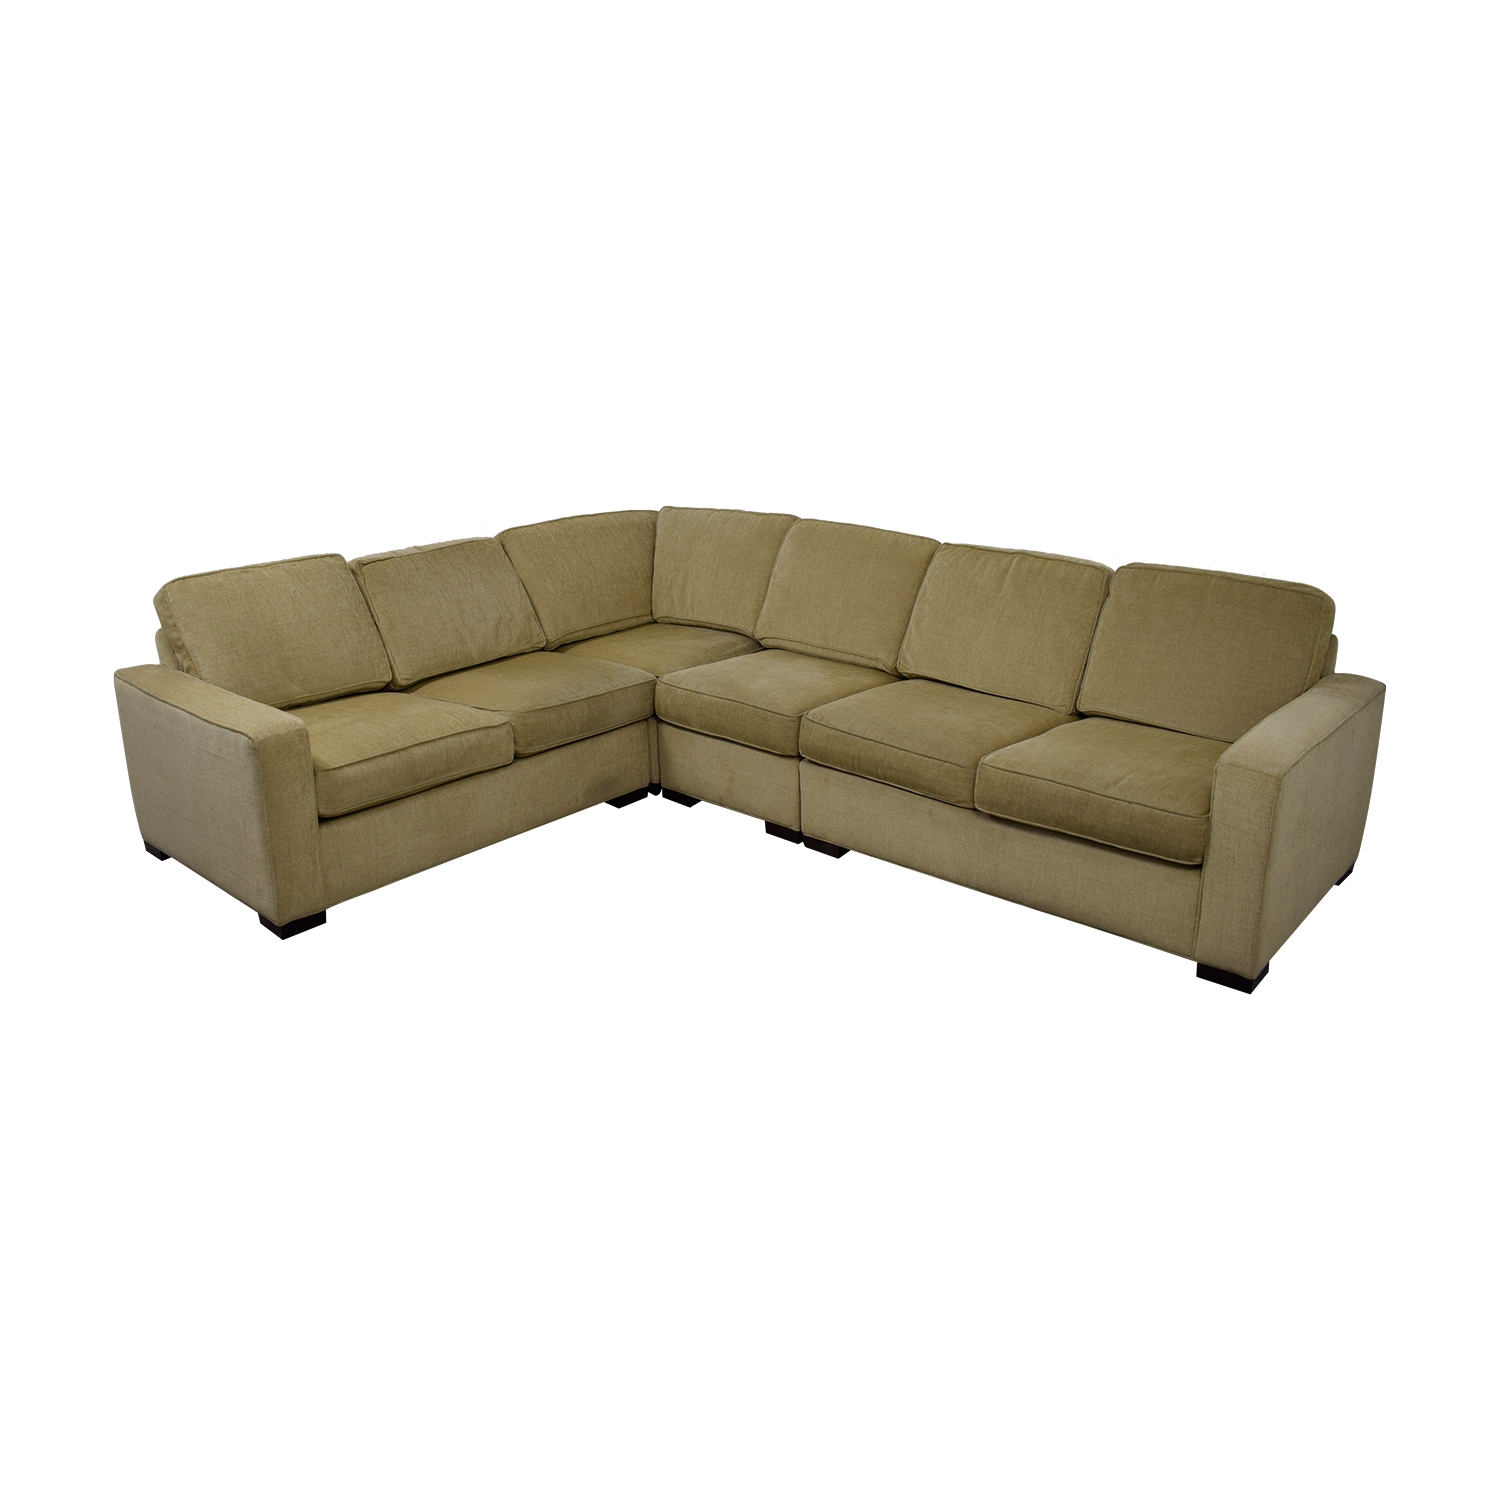 Ethan Allen Tan Sectional Couch Used